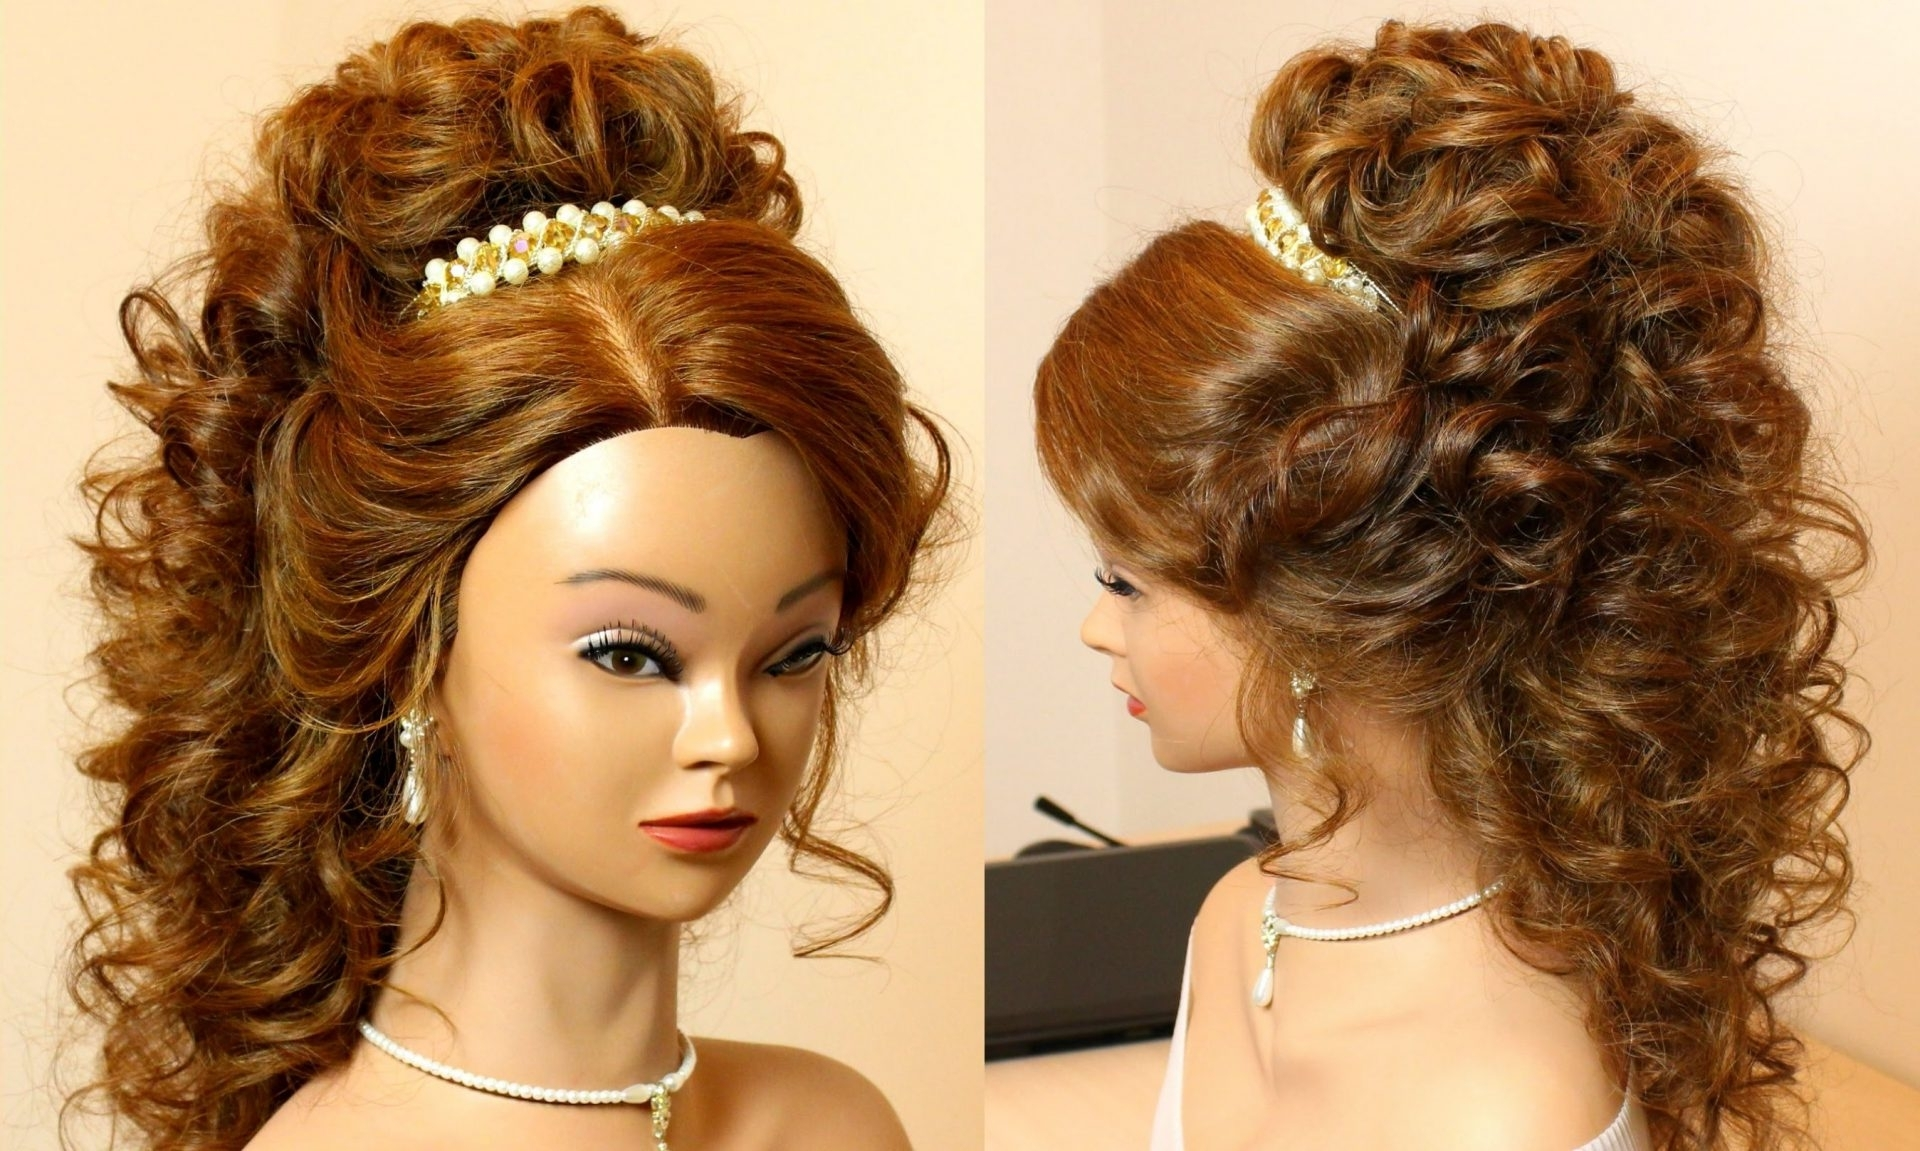 Fashionable Wedding Updos For Long Hair With Tiara Regarding Hairstylesurly Wedding Updo Long Bridal With Tiara And Veil (View 7 of 15)